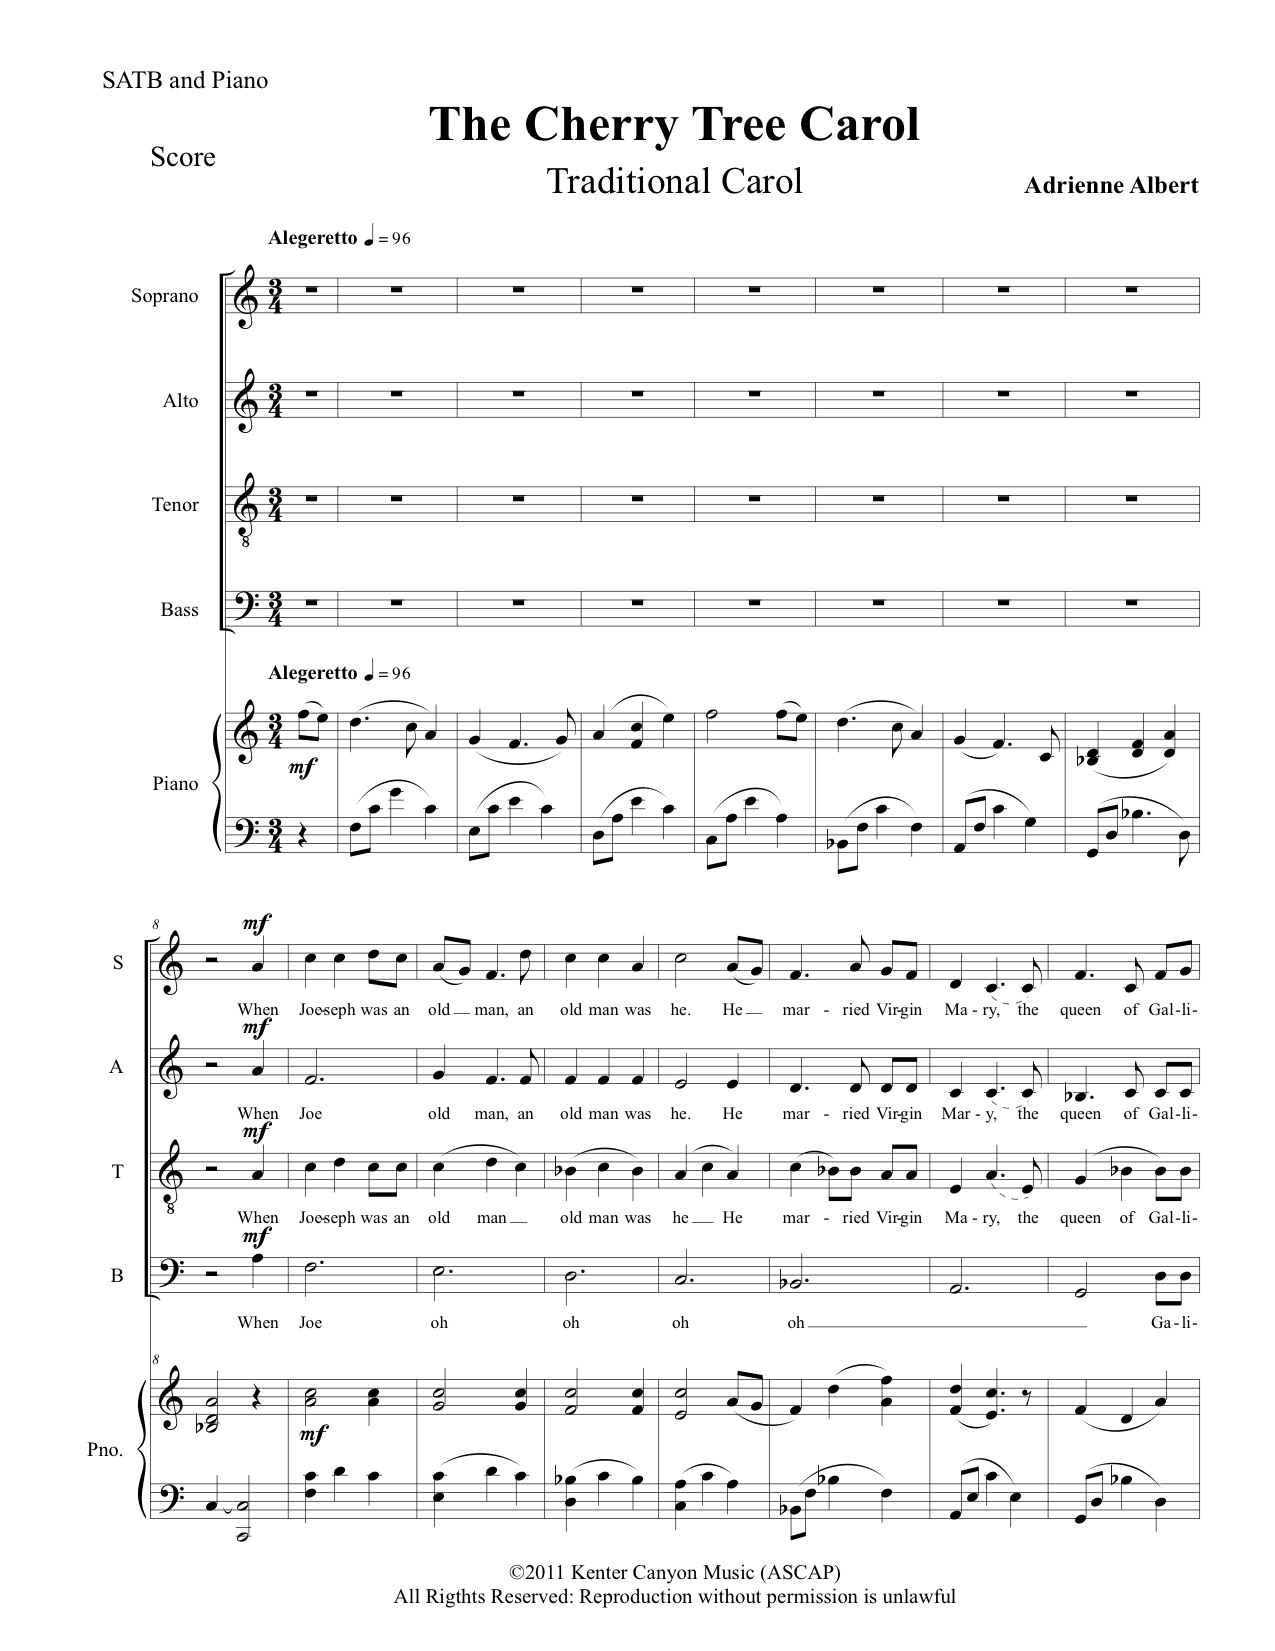 The Cherry Tree Carol for SATB